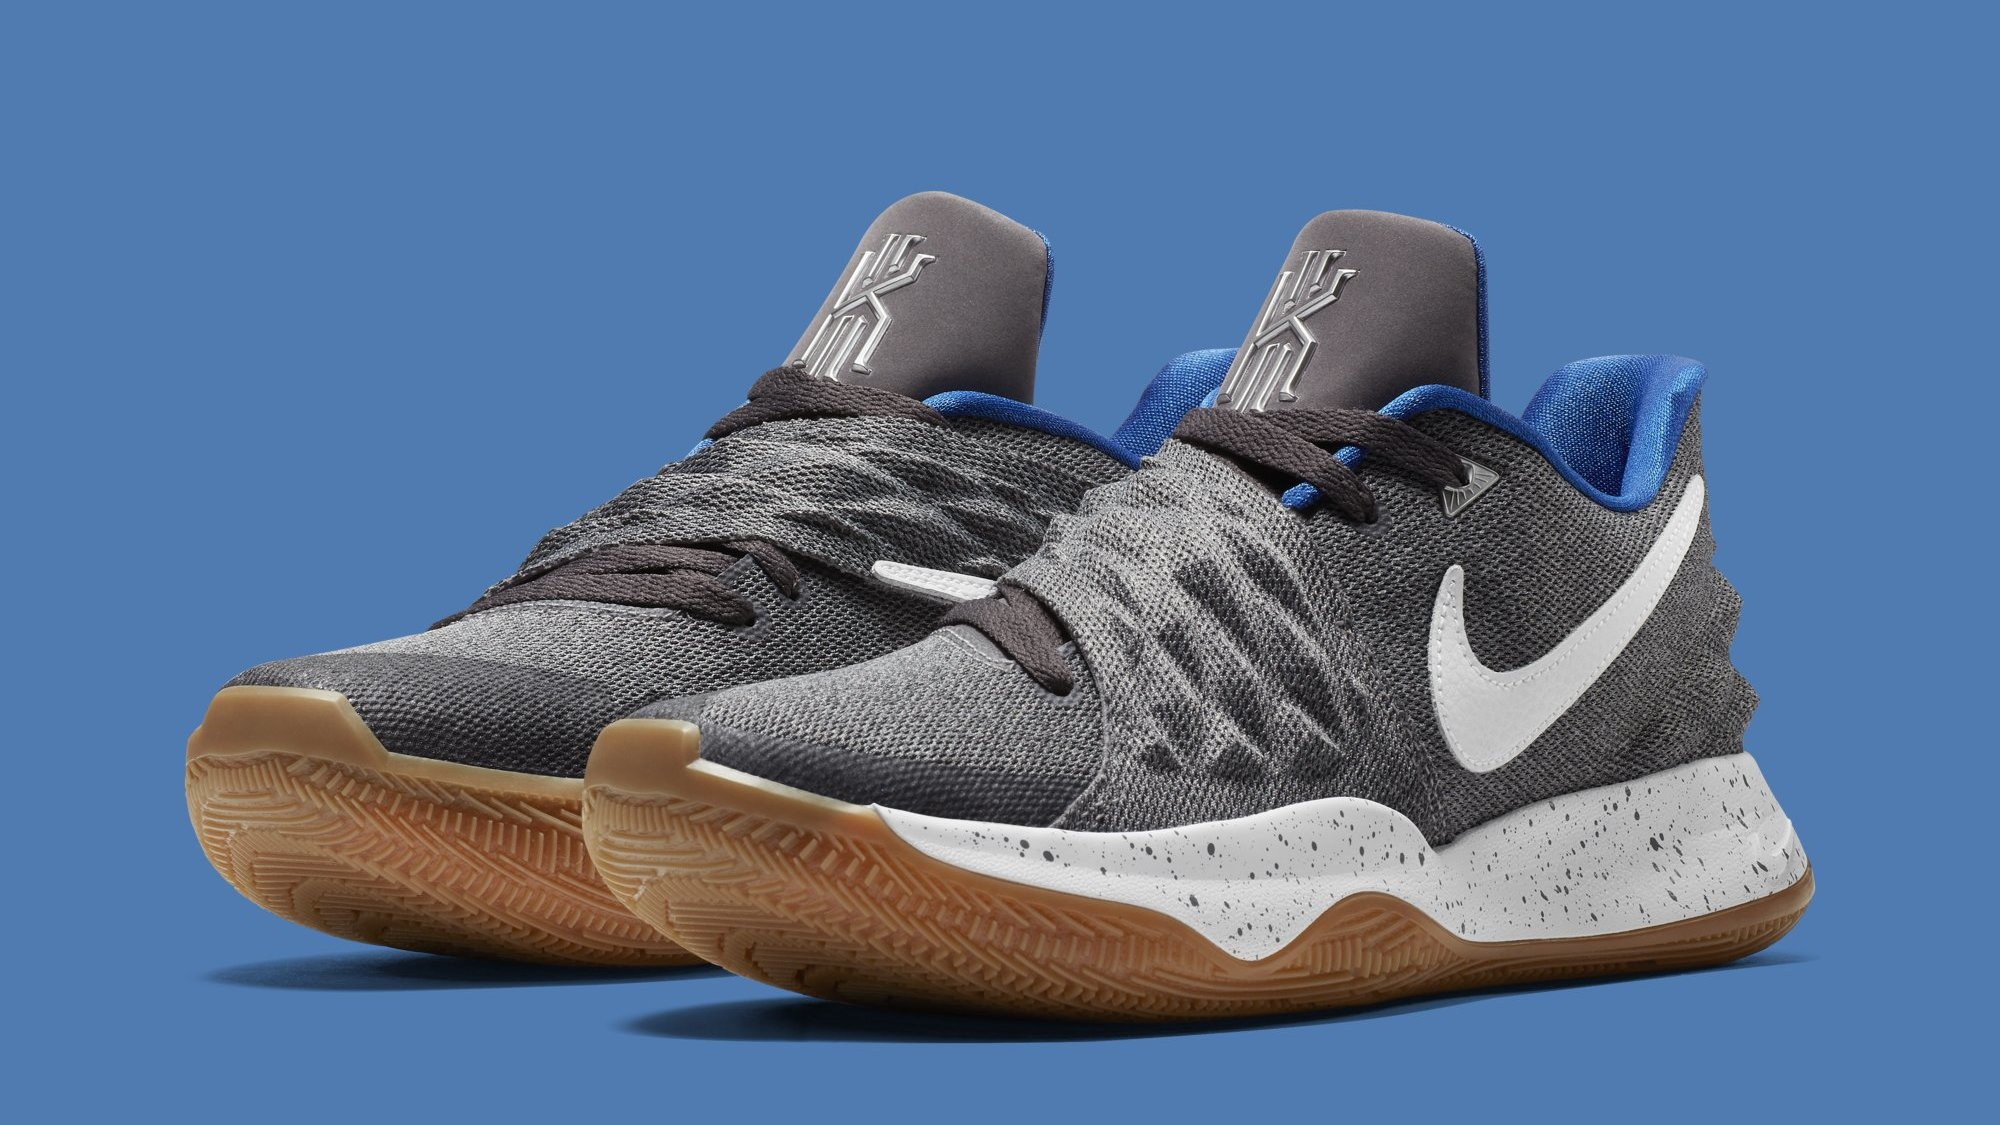 quality design 29d9c 00f0c Nike Kyrie Low  Uncle Drew  AO8979-005 Release Date   Sole Collector